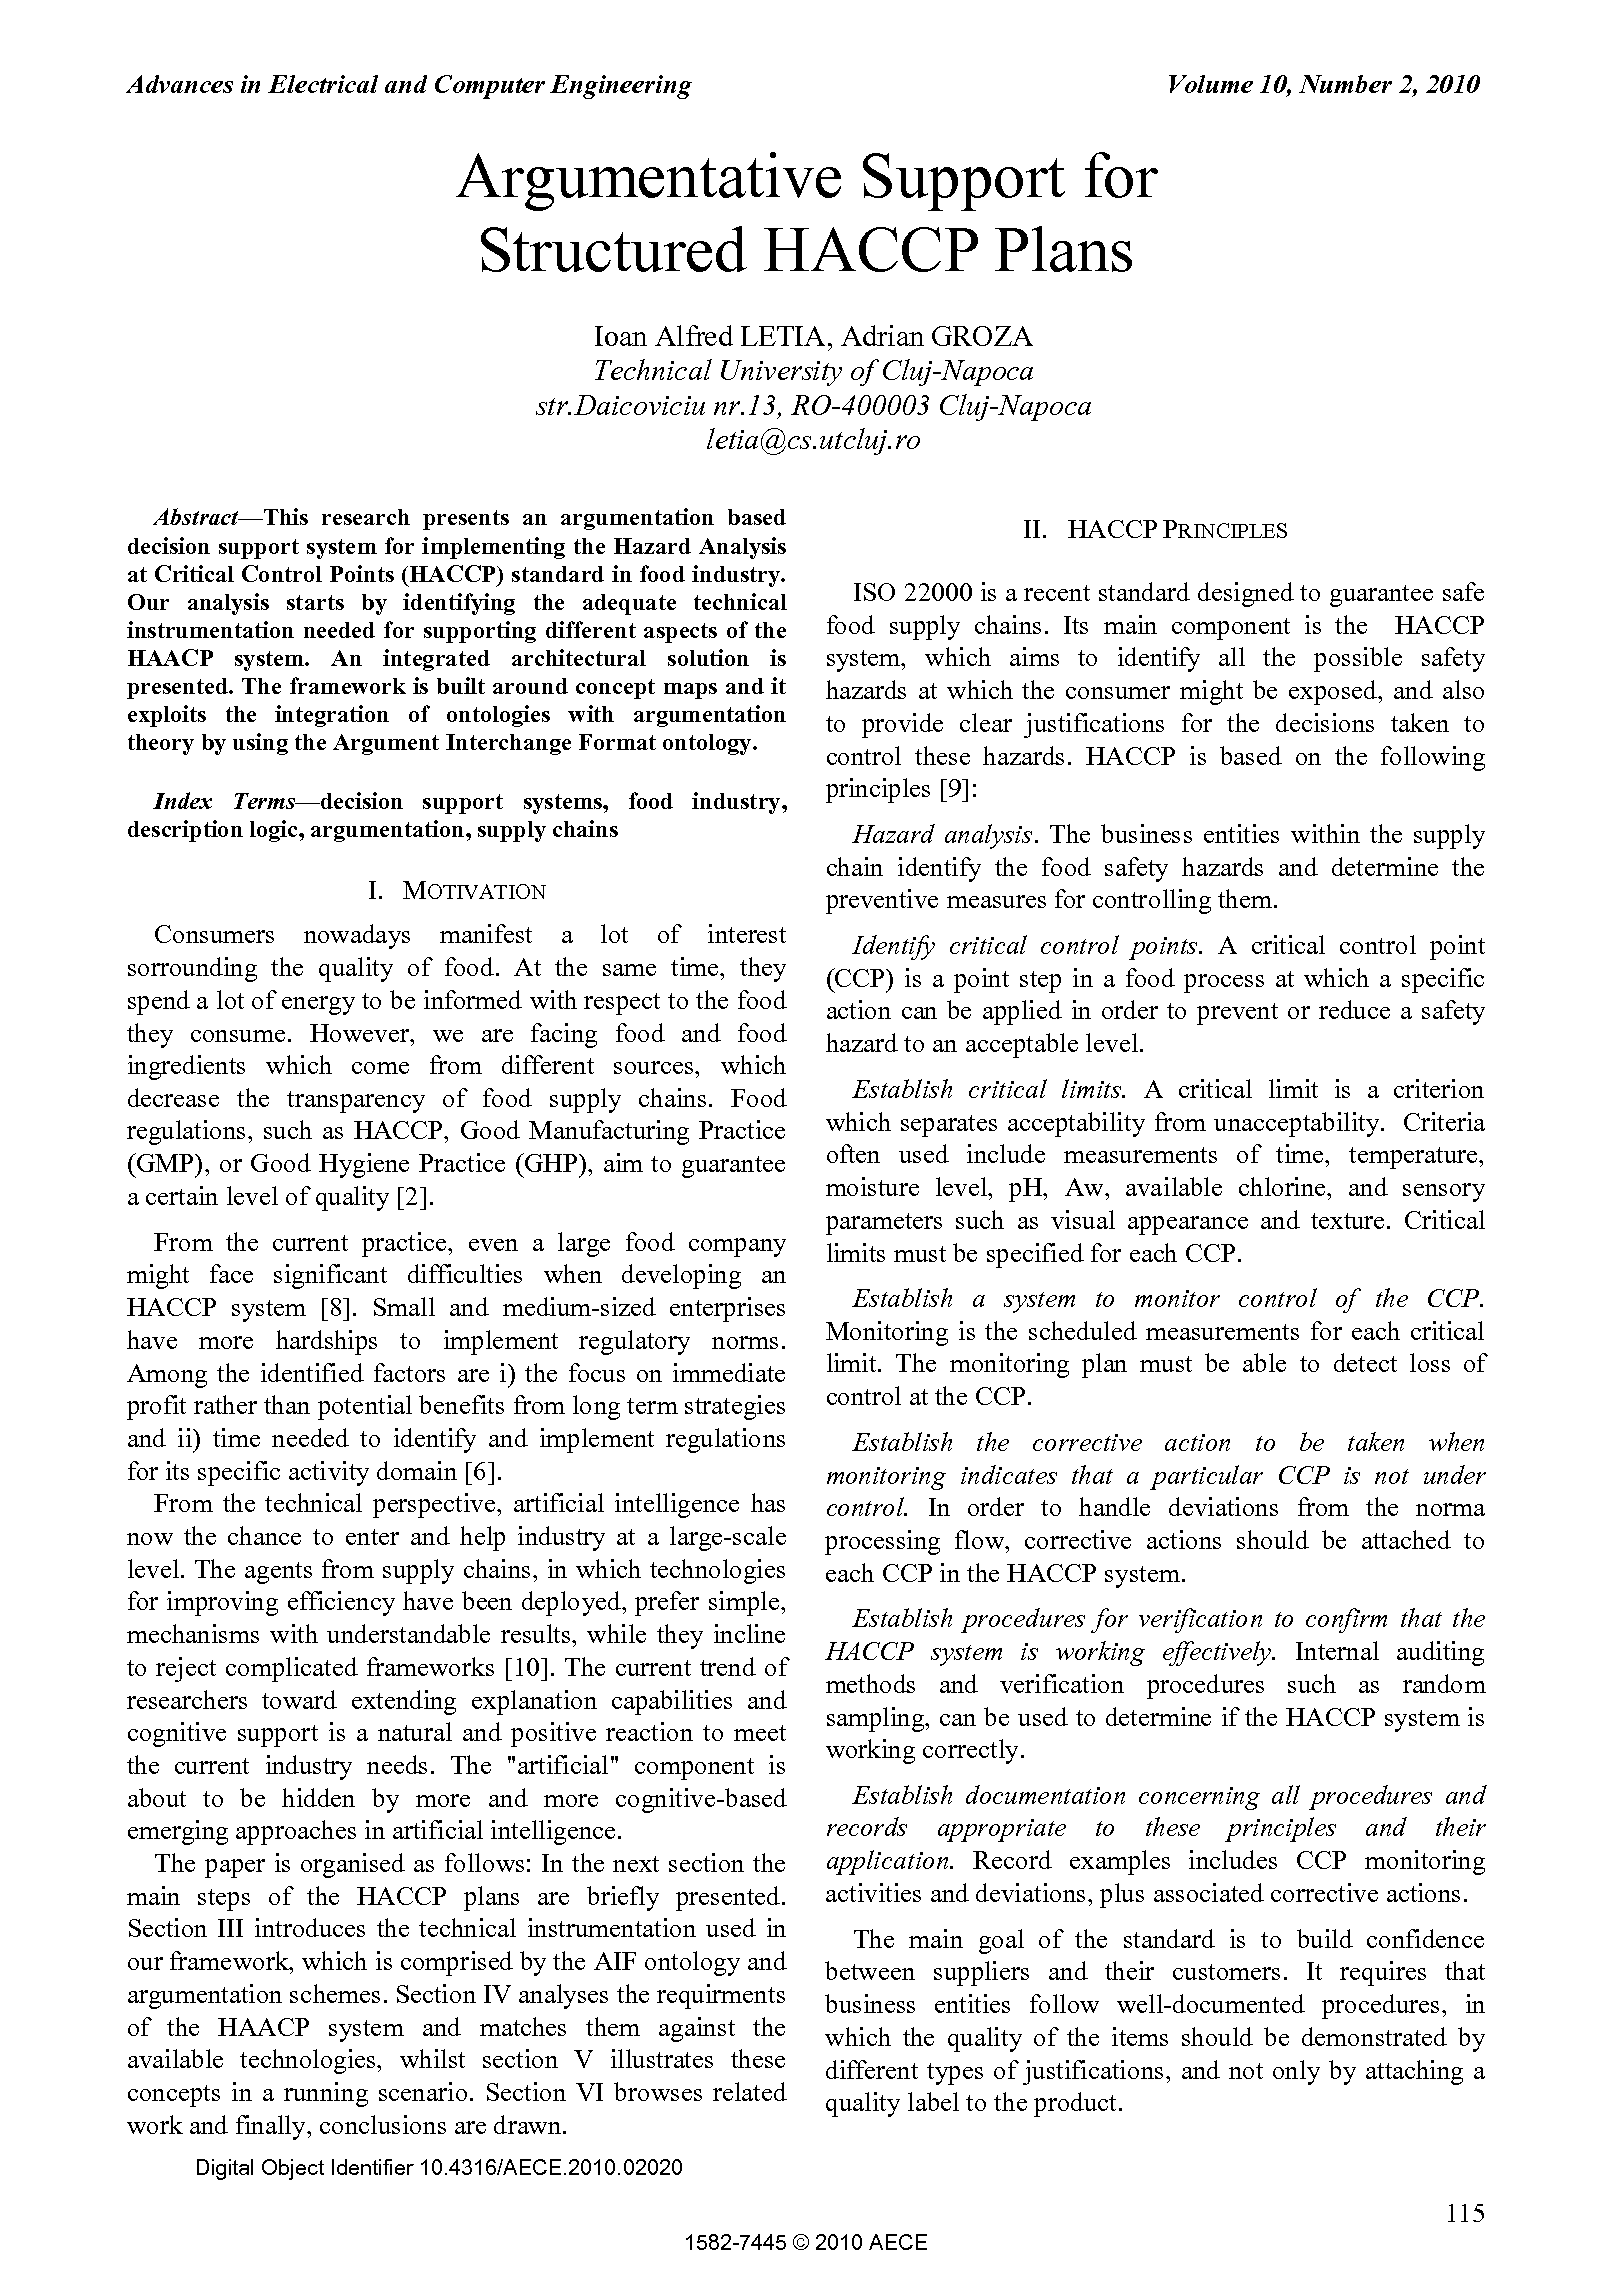 PDF Quickview for paper with DOI:10.4316/AECE.2010.02020